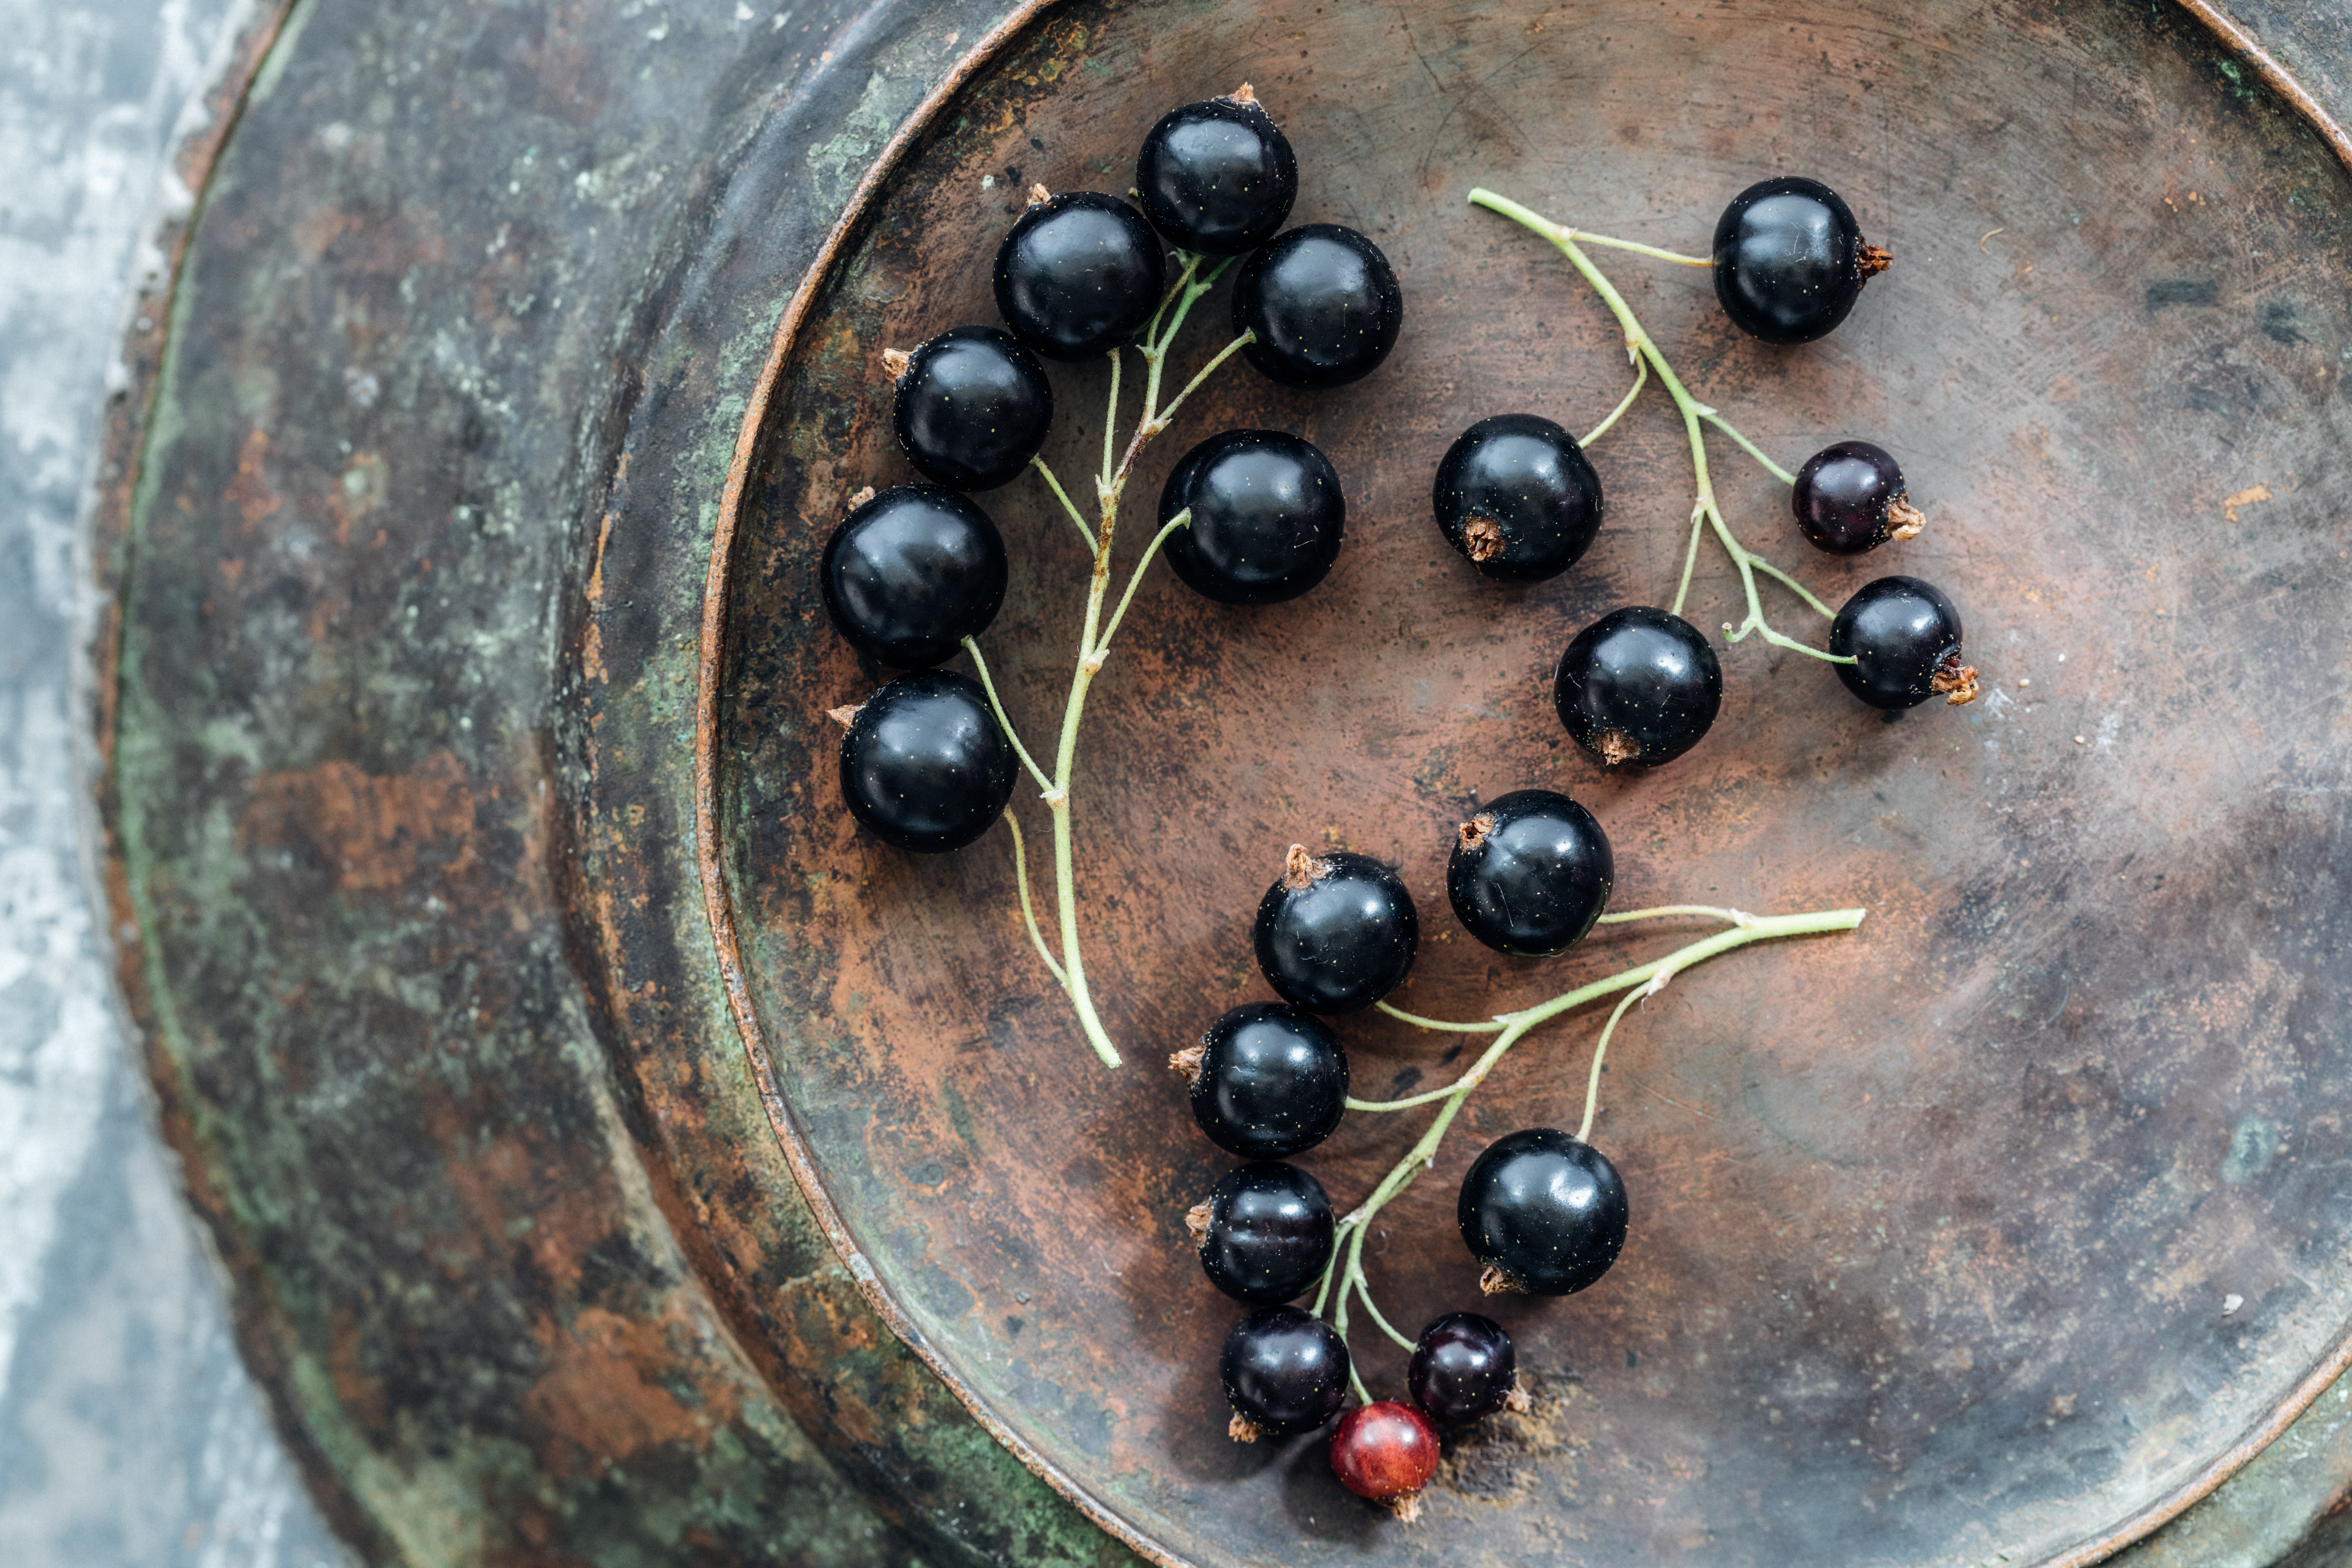 What Are the Health Benefits of Dried Black Currants